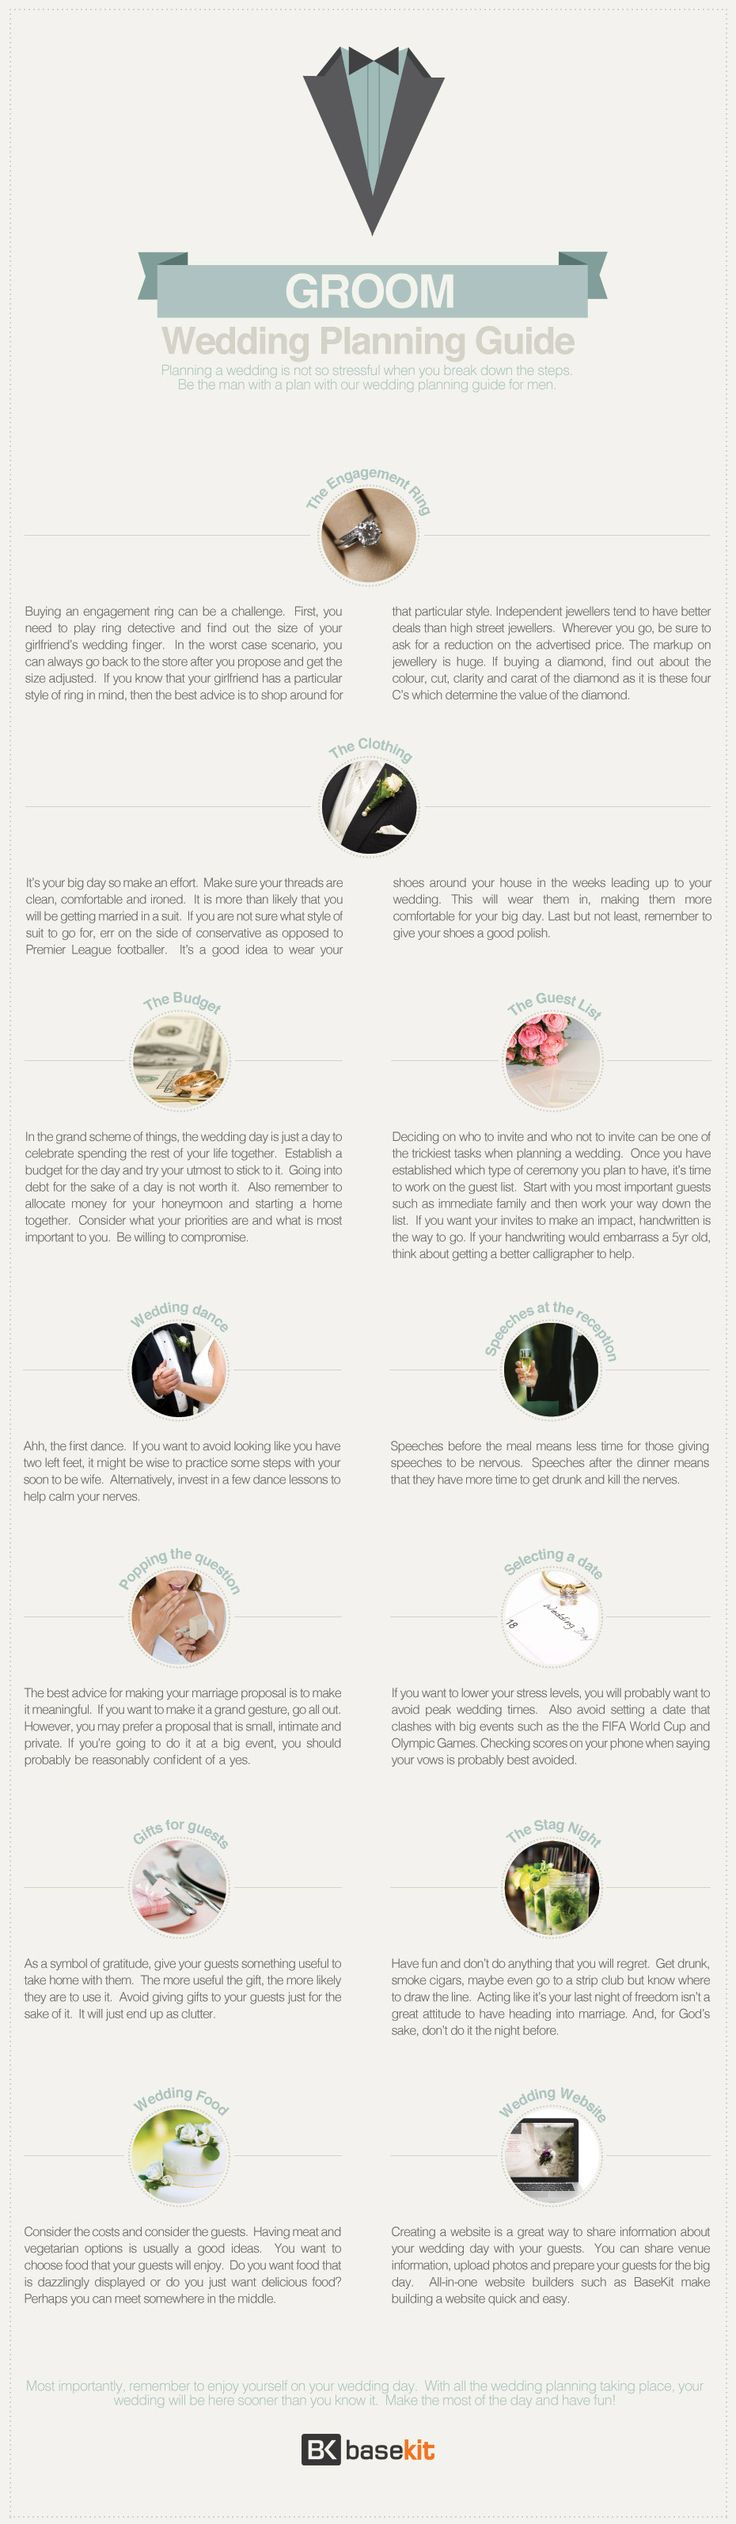 Groom's Guide To Wedding Planning [INFOGRAPHIC]